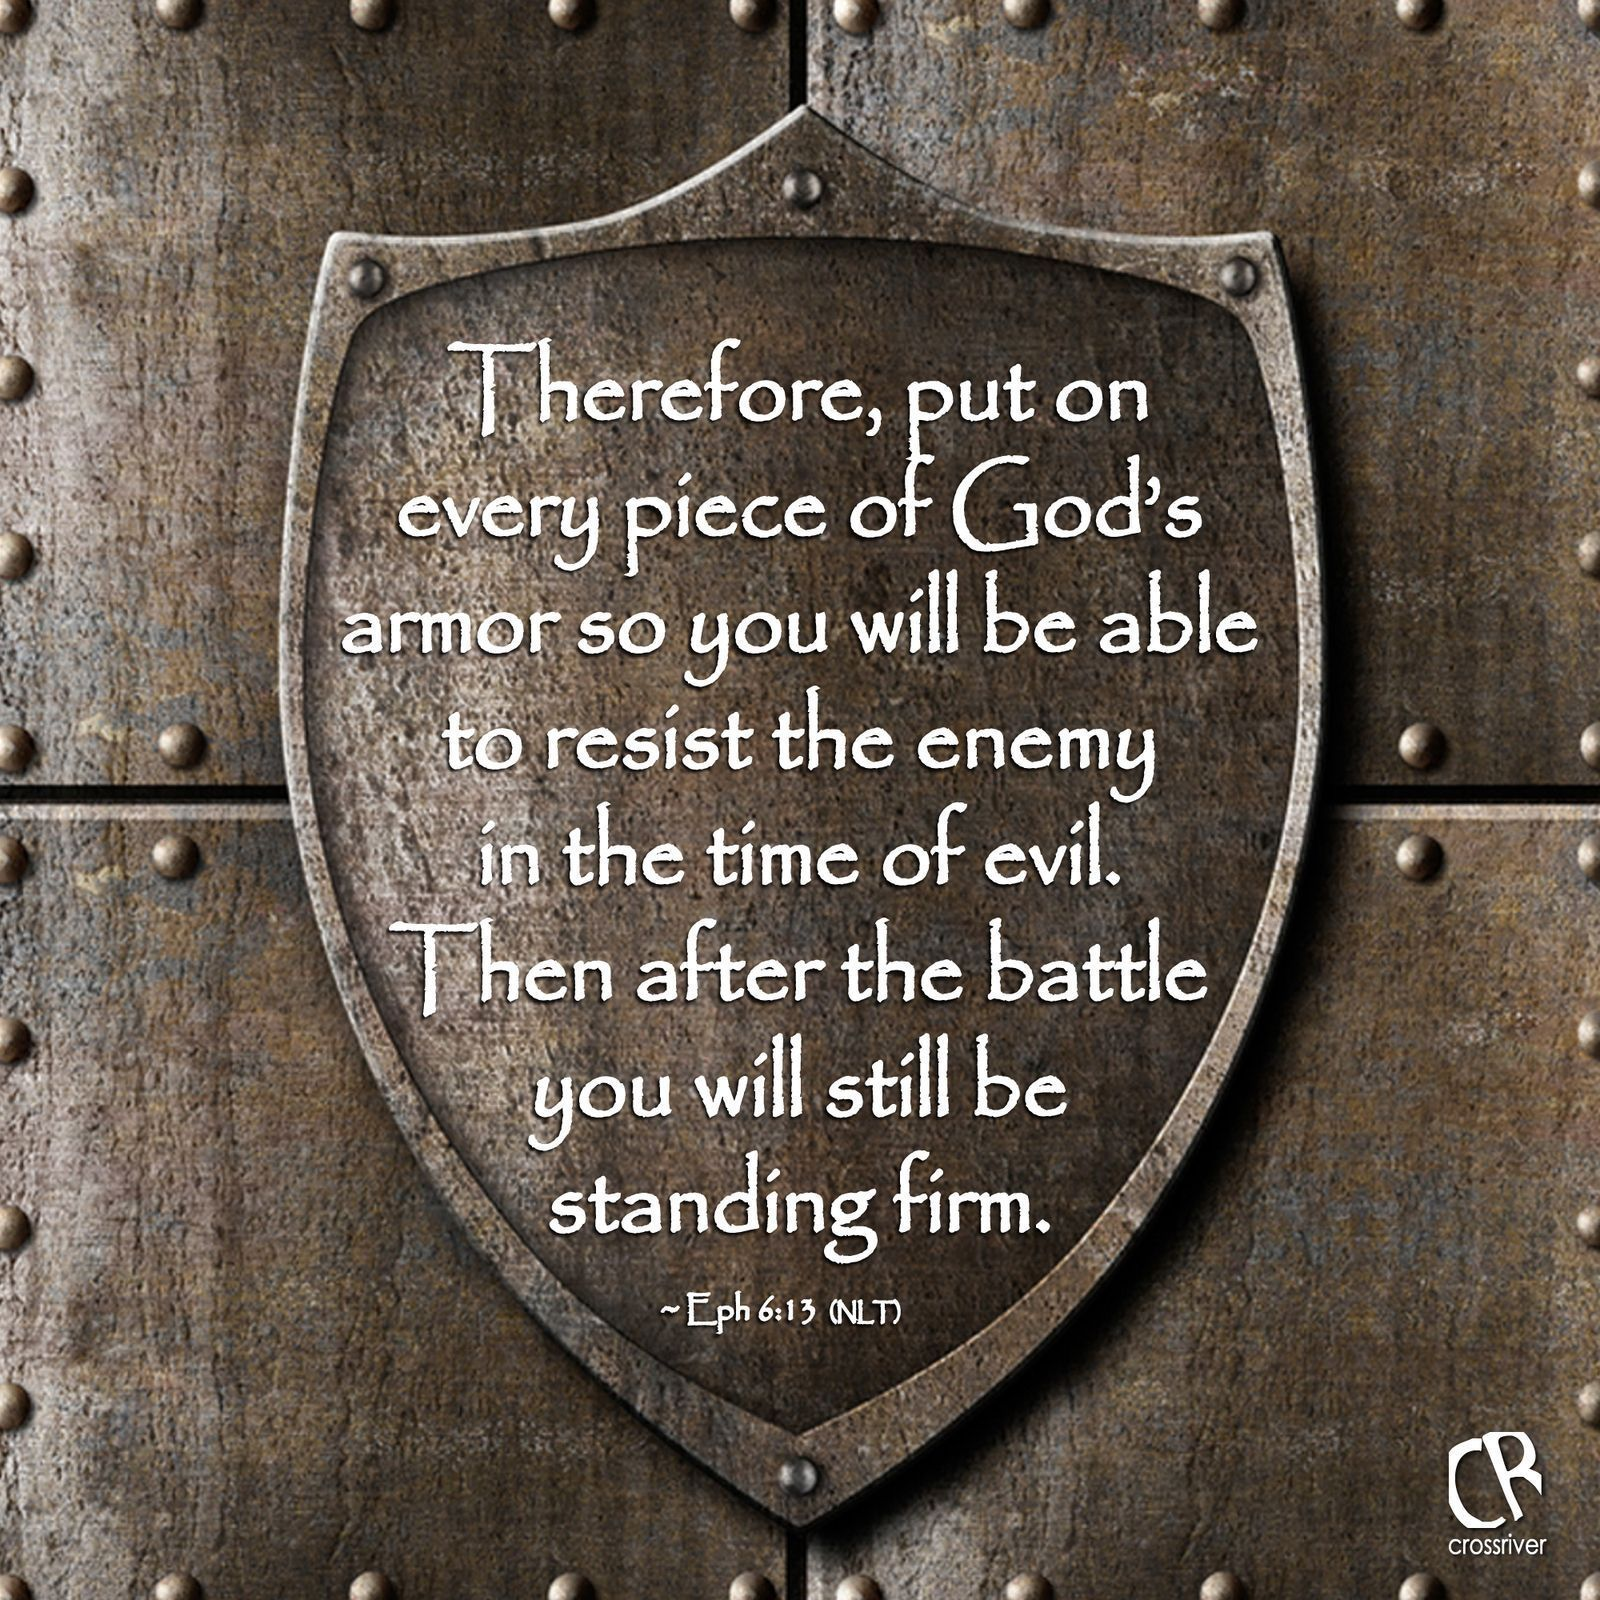 Therefore, Put On Every Piece Of God's Armor So You Will